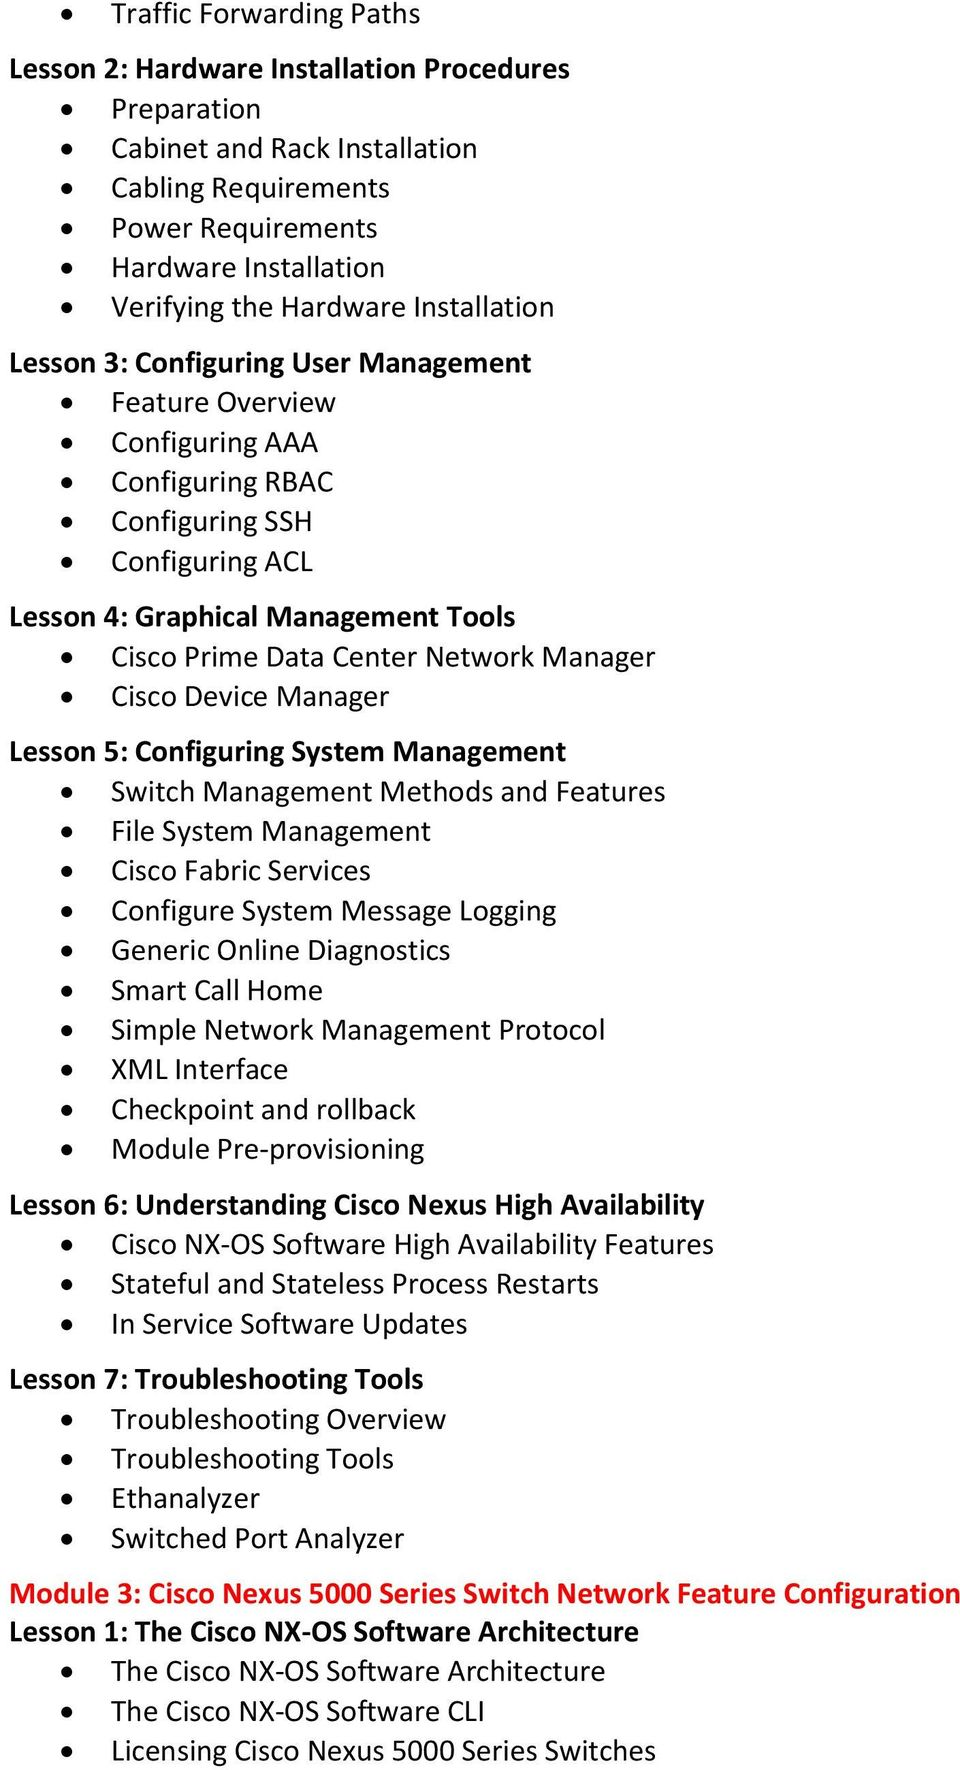 Network Manager Cisco Device Manager Lesson 5: Configuring System Management Switch Management Methods and Features File System Management Cisco Fabric Services Configure System Message Logging